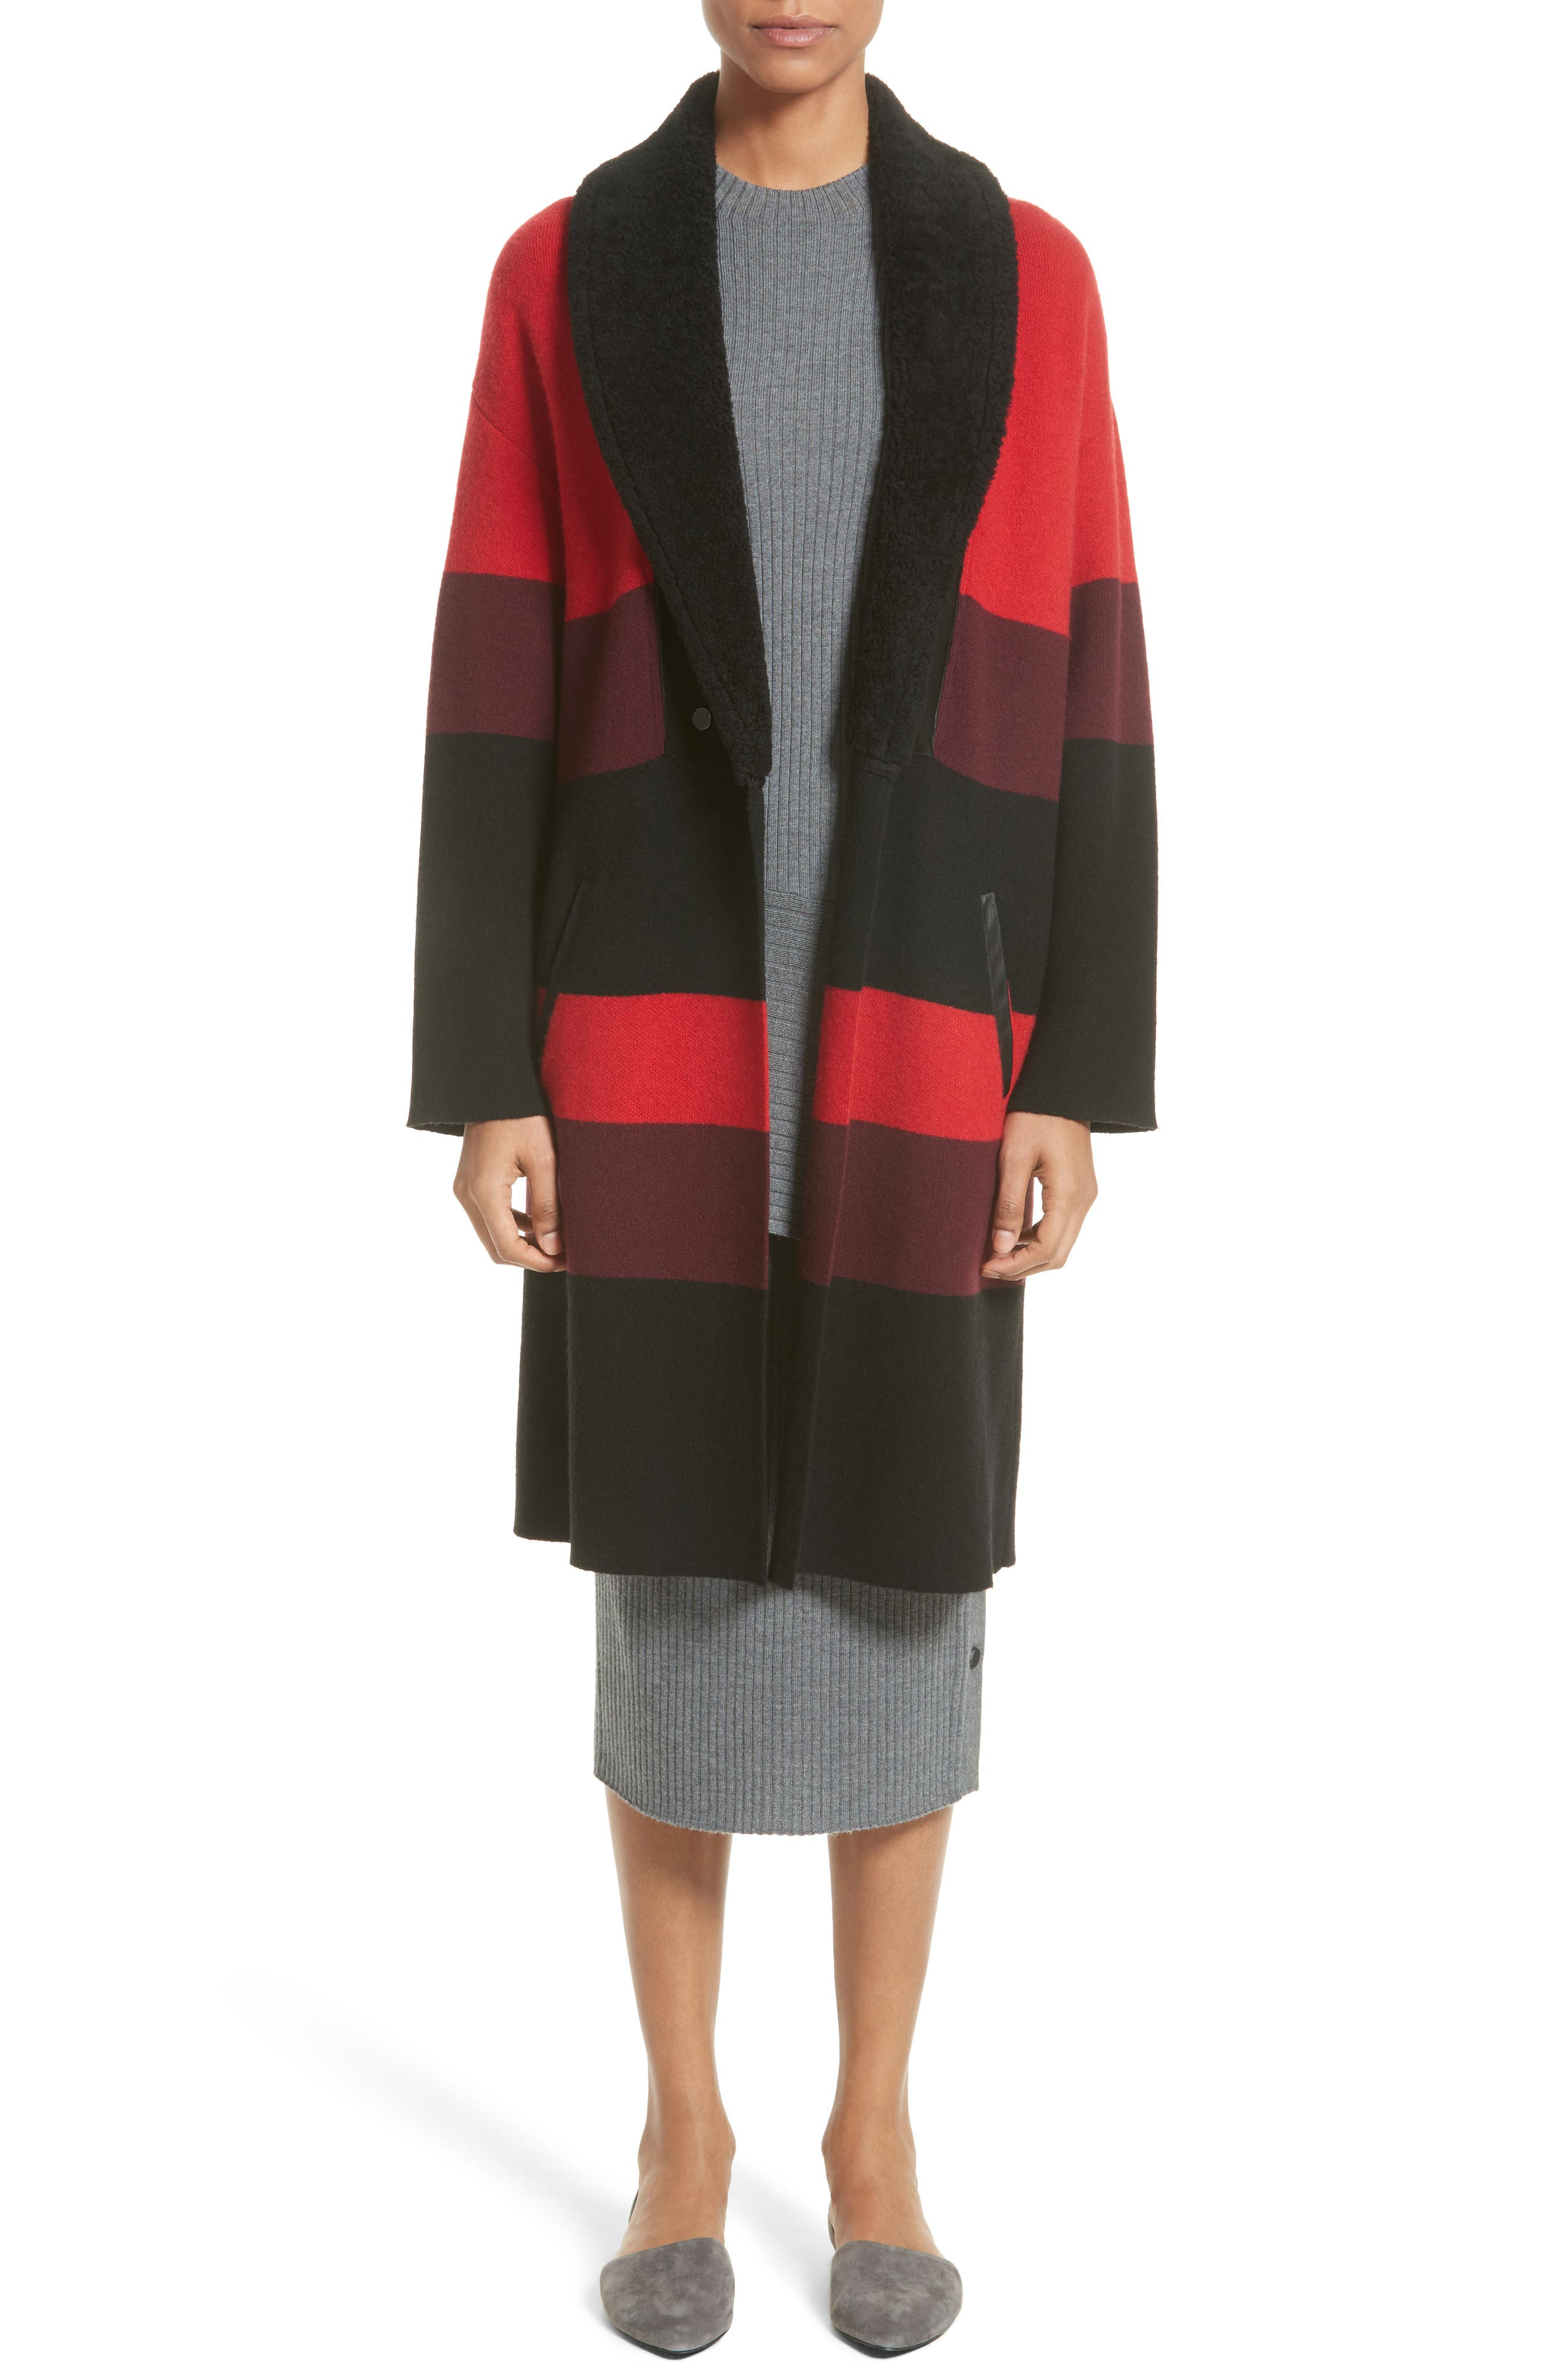 Double Knit Felted Wool Blend Coat with Genuine Shearling Collar,                             Alternate thumbnail 7, color,                             Caviar/ Sari Multi